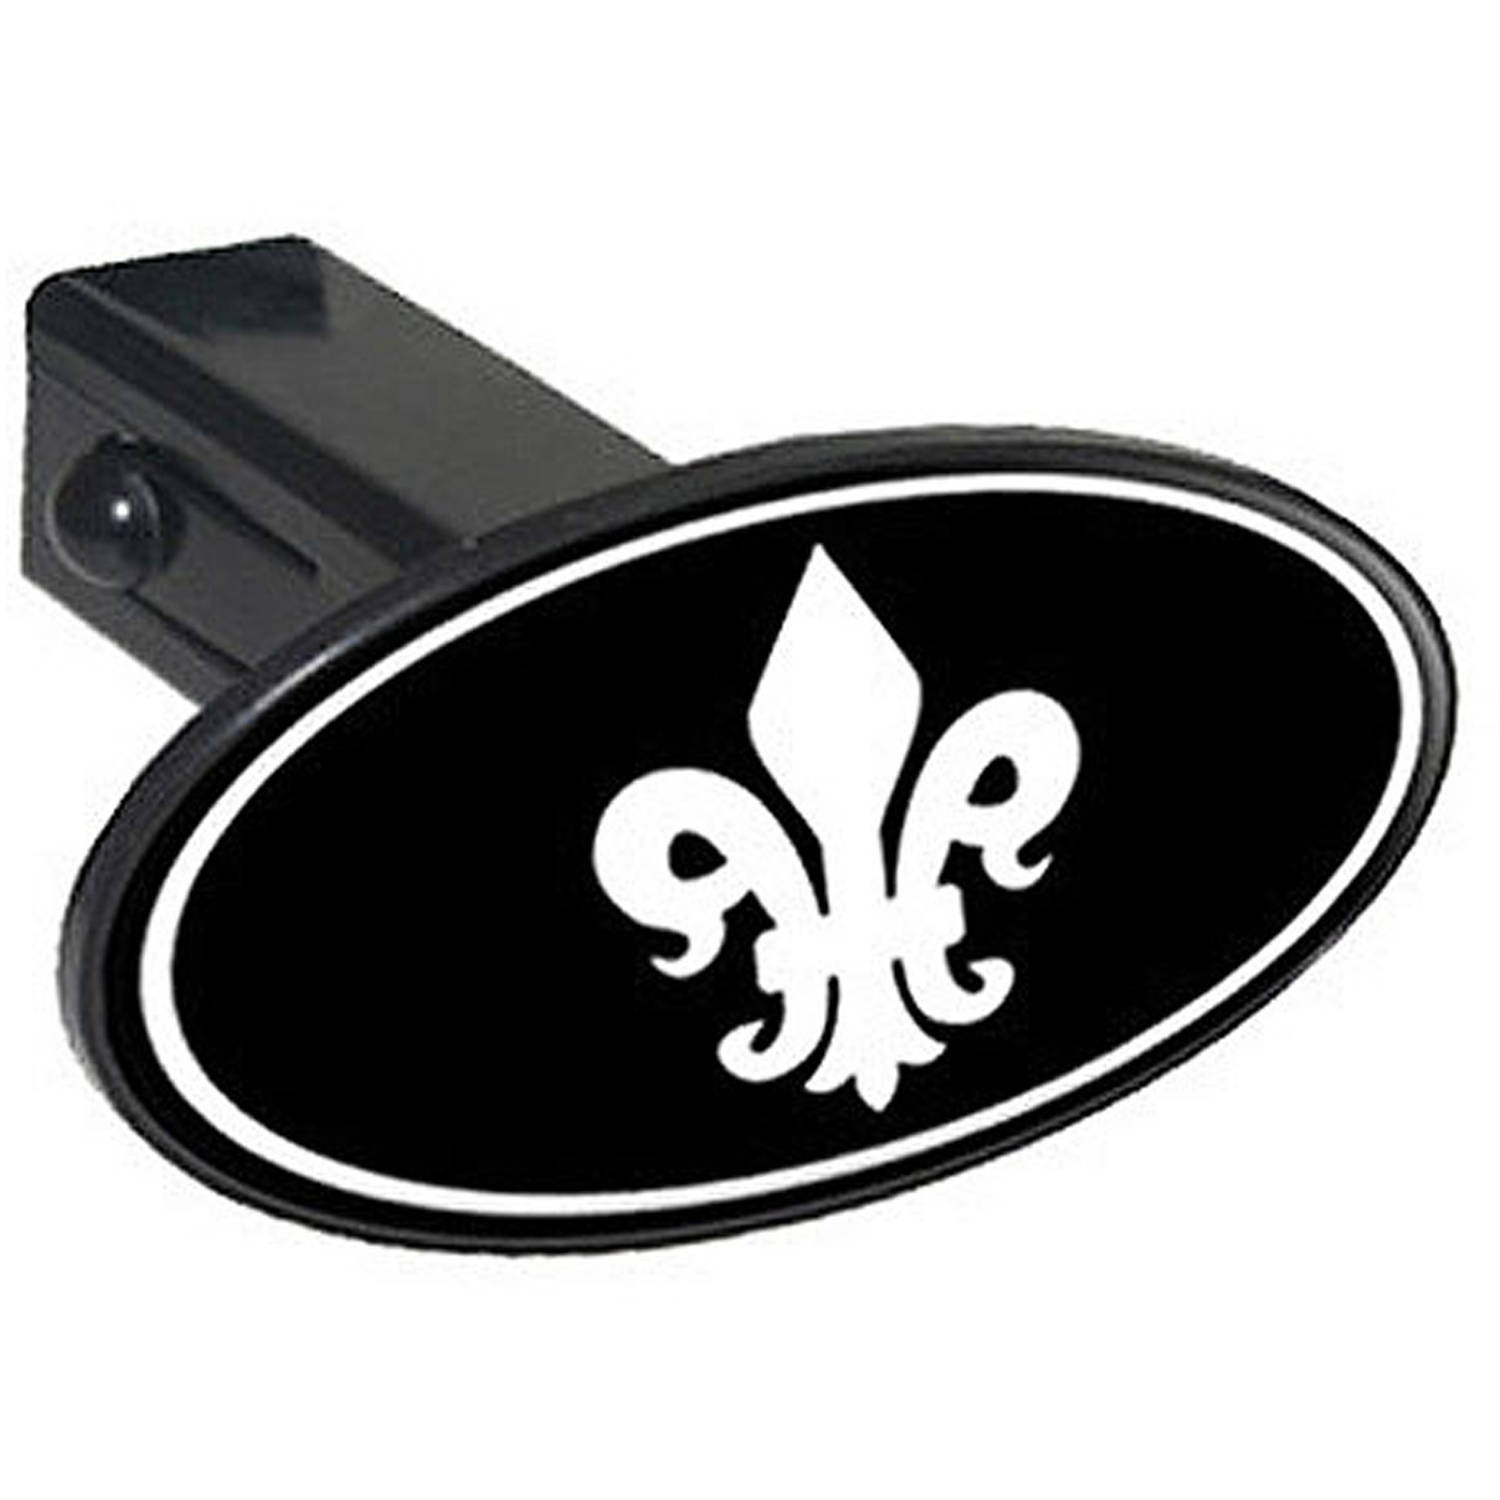 "Fleur De Lis White On Black 1.25"" Oval Tow Trailer Hitch Cover Plug Insert"